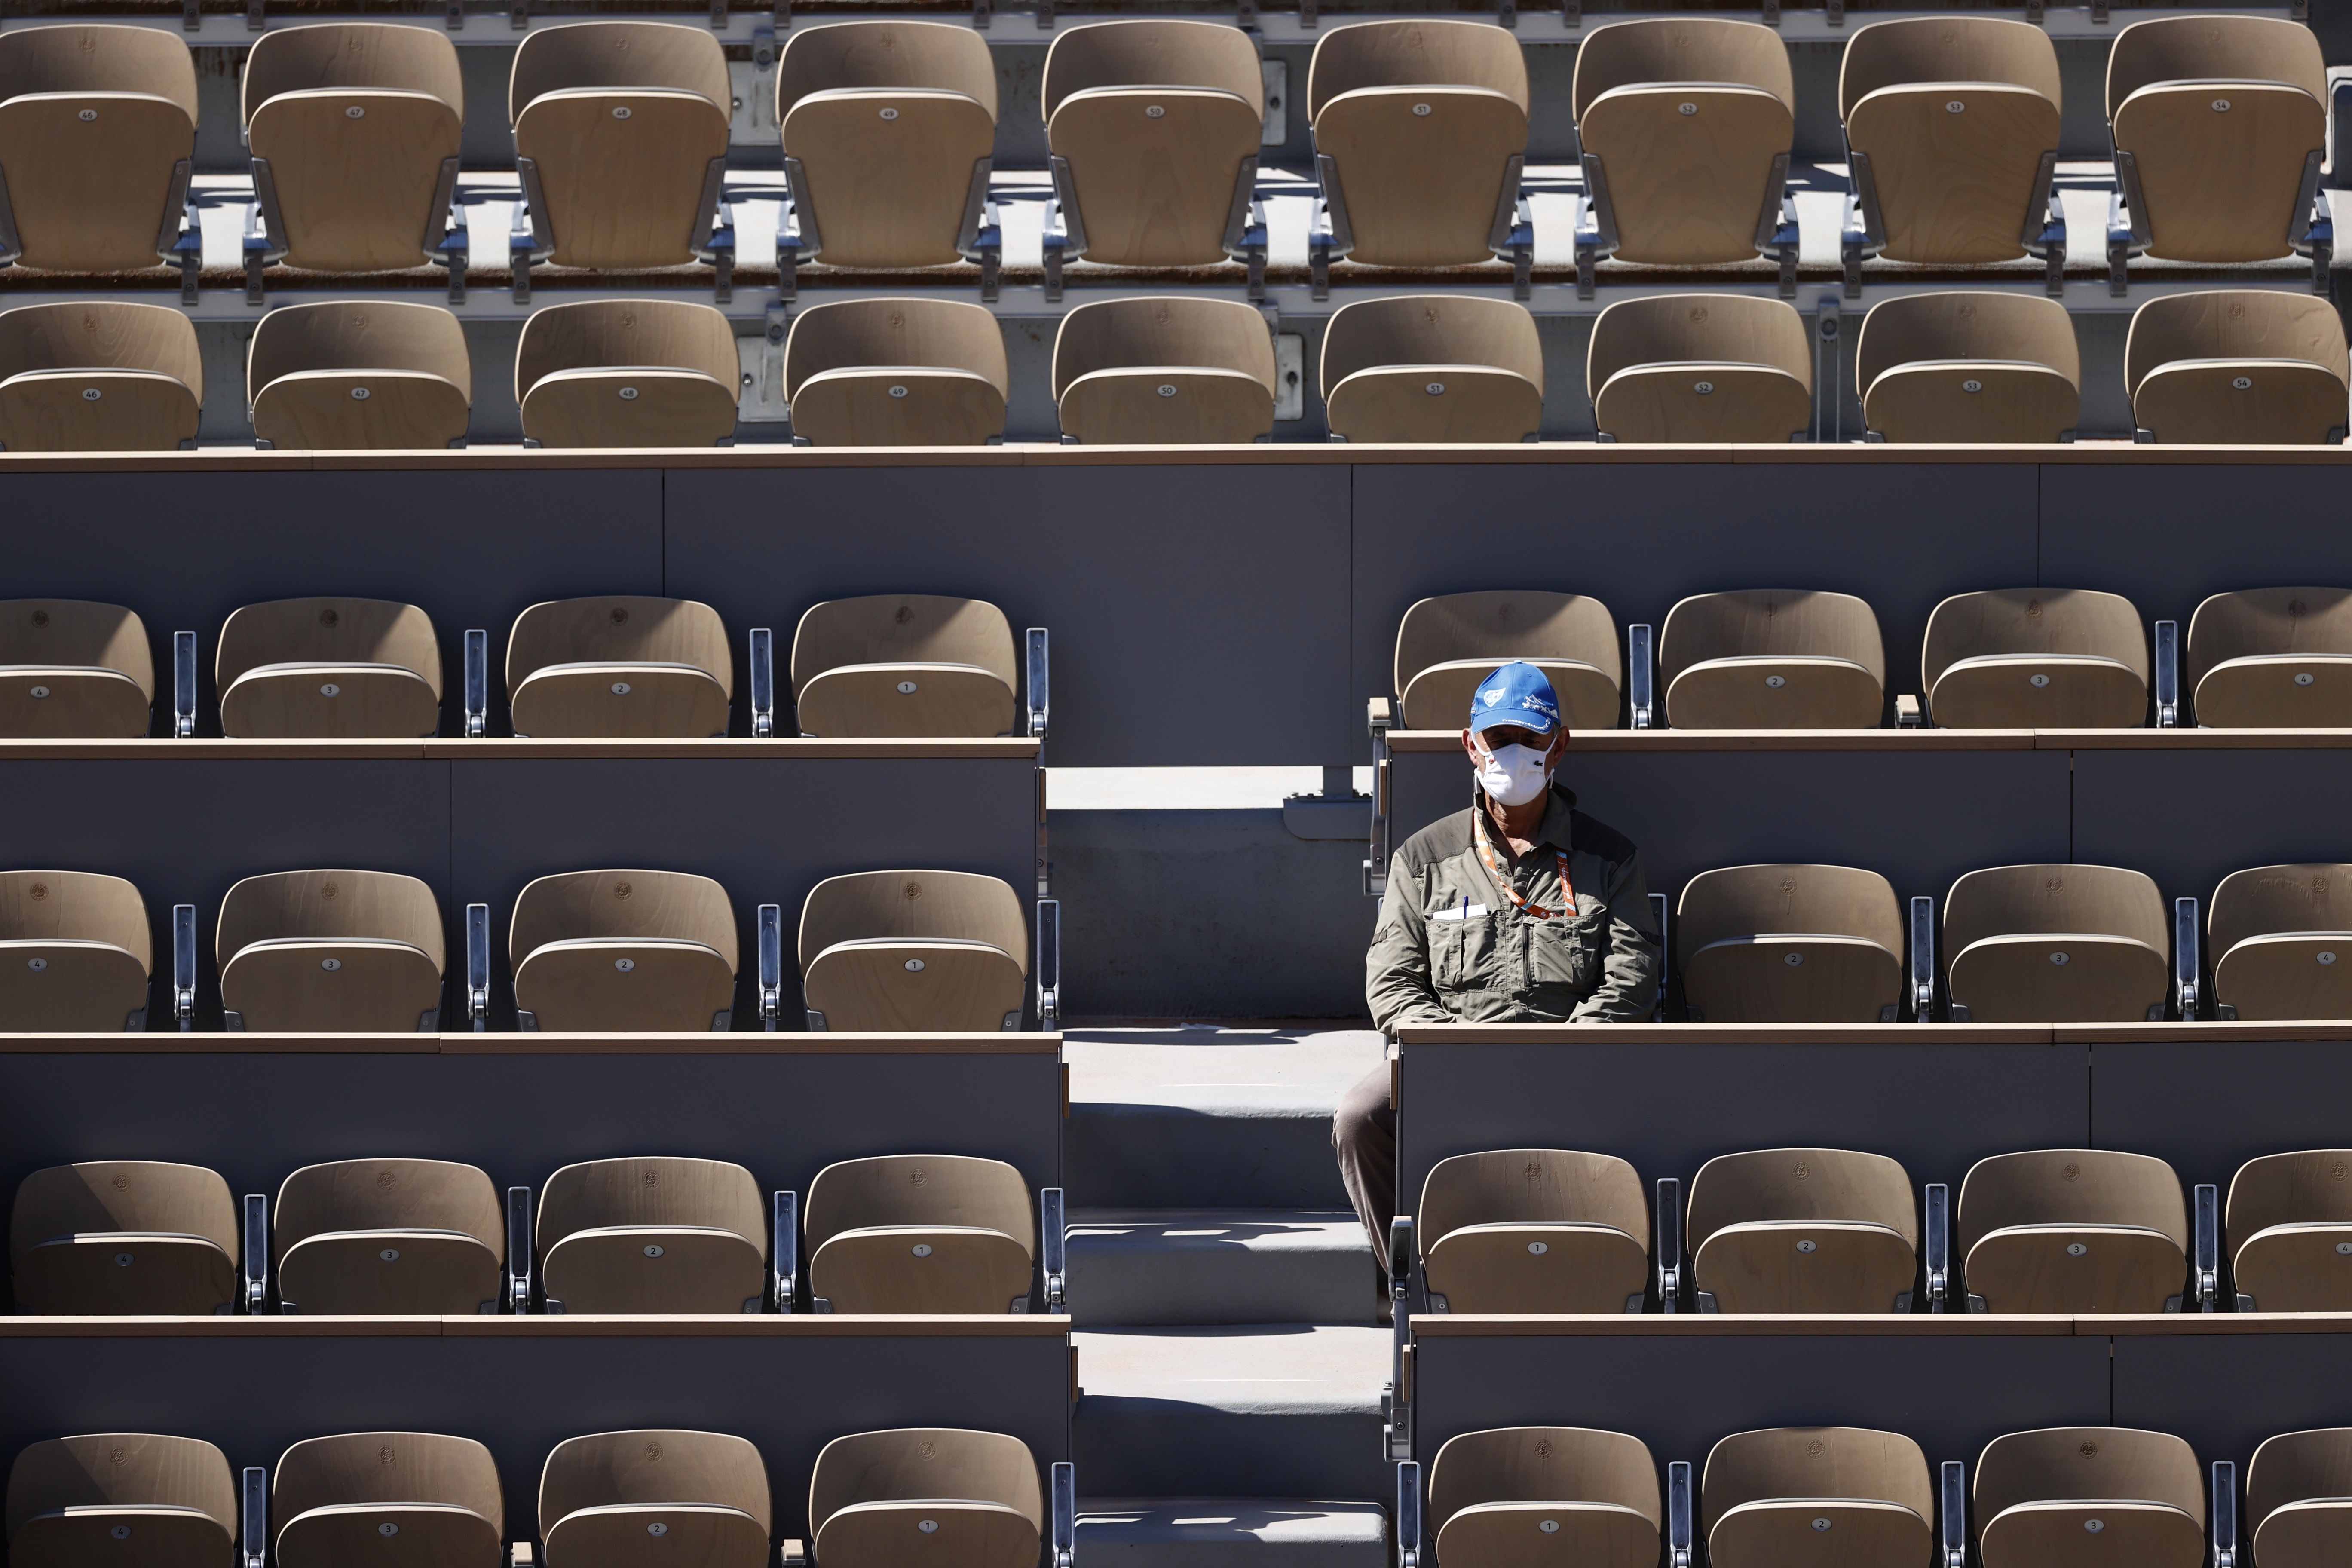 Tennis - French Open - Roland Garros, Paris, France - May 30, 2021 A man is seen in an empty stand during the first round match between Romania's Patricia Maria Tig and Japan's Naomi Osaka REUTERS/Christian Hartmann